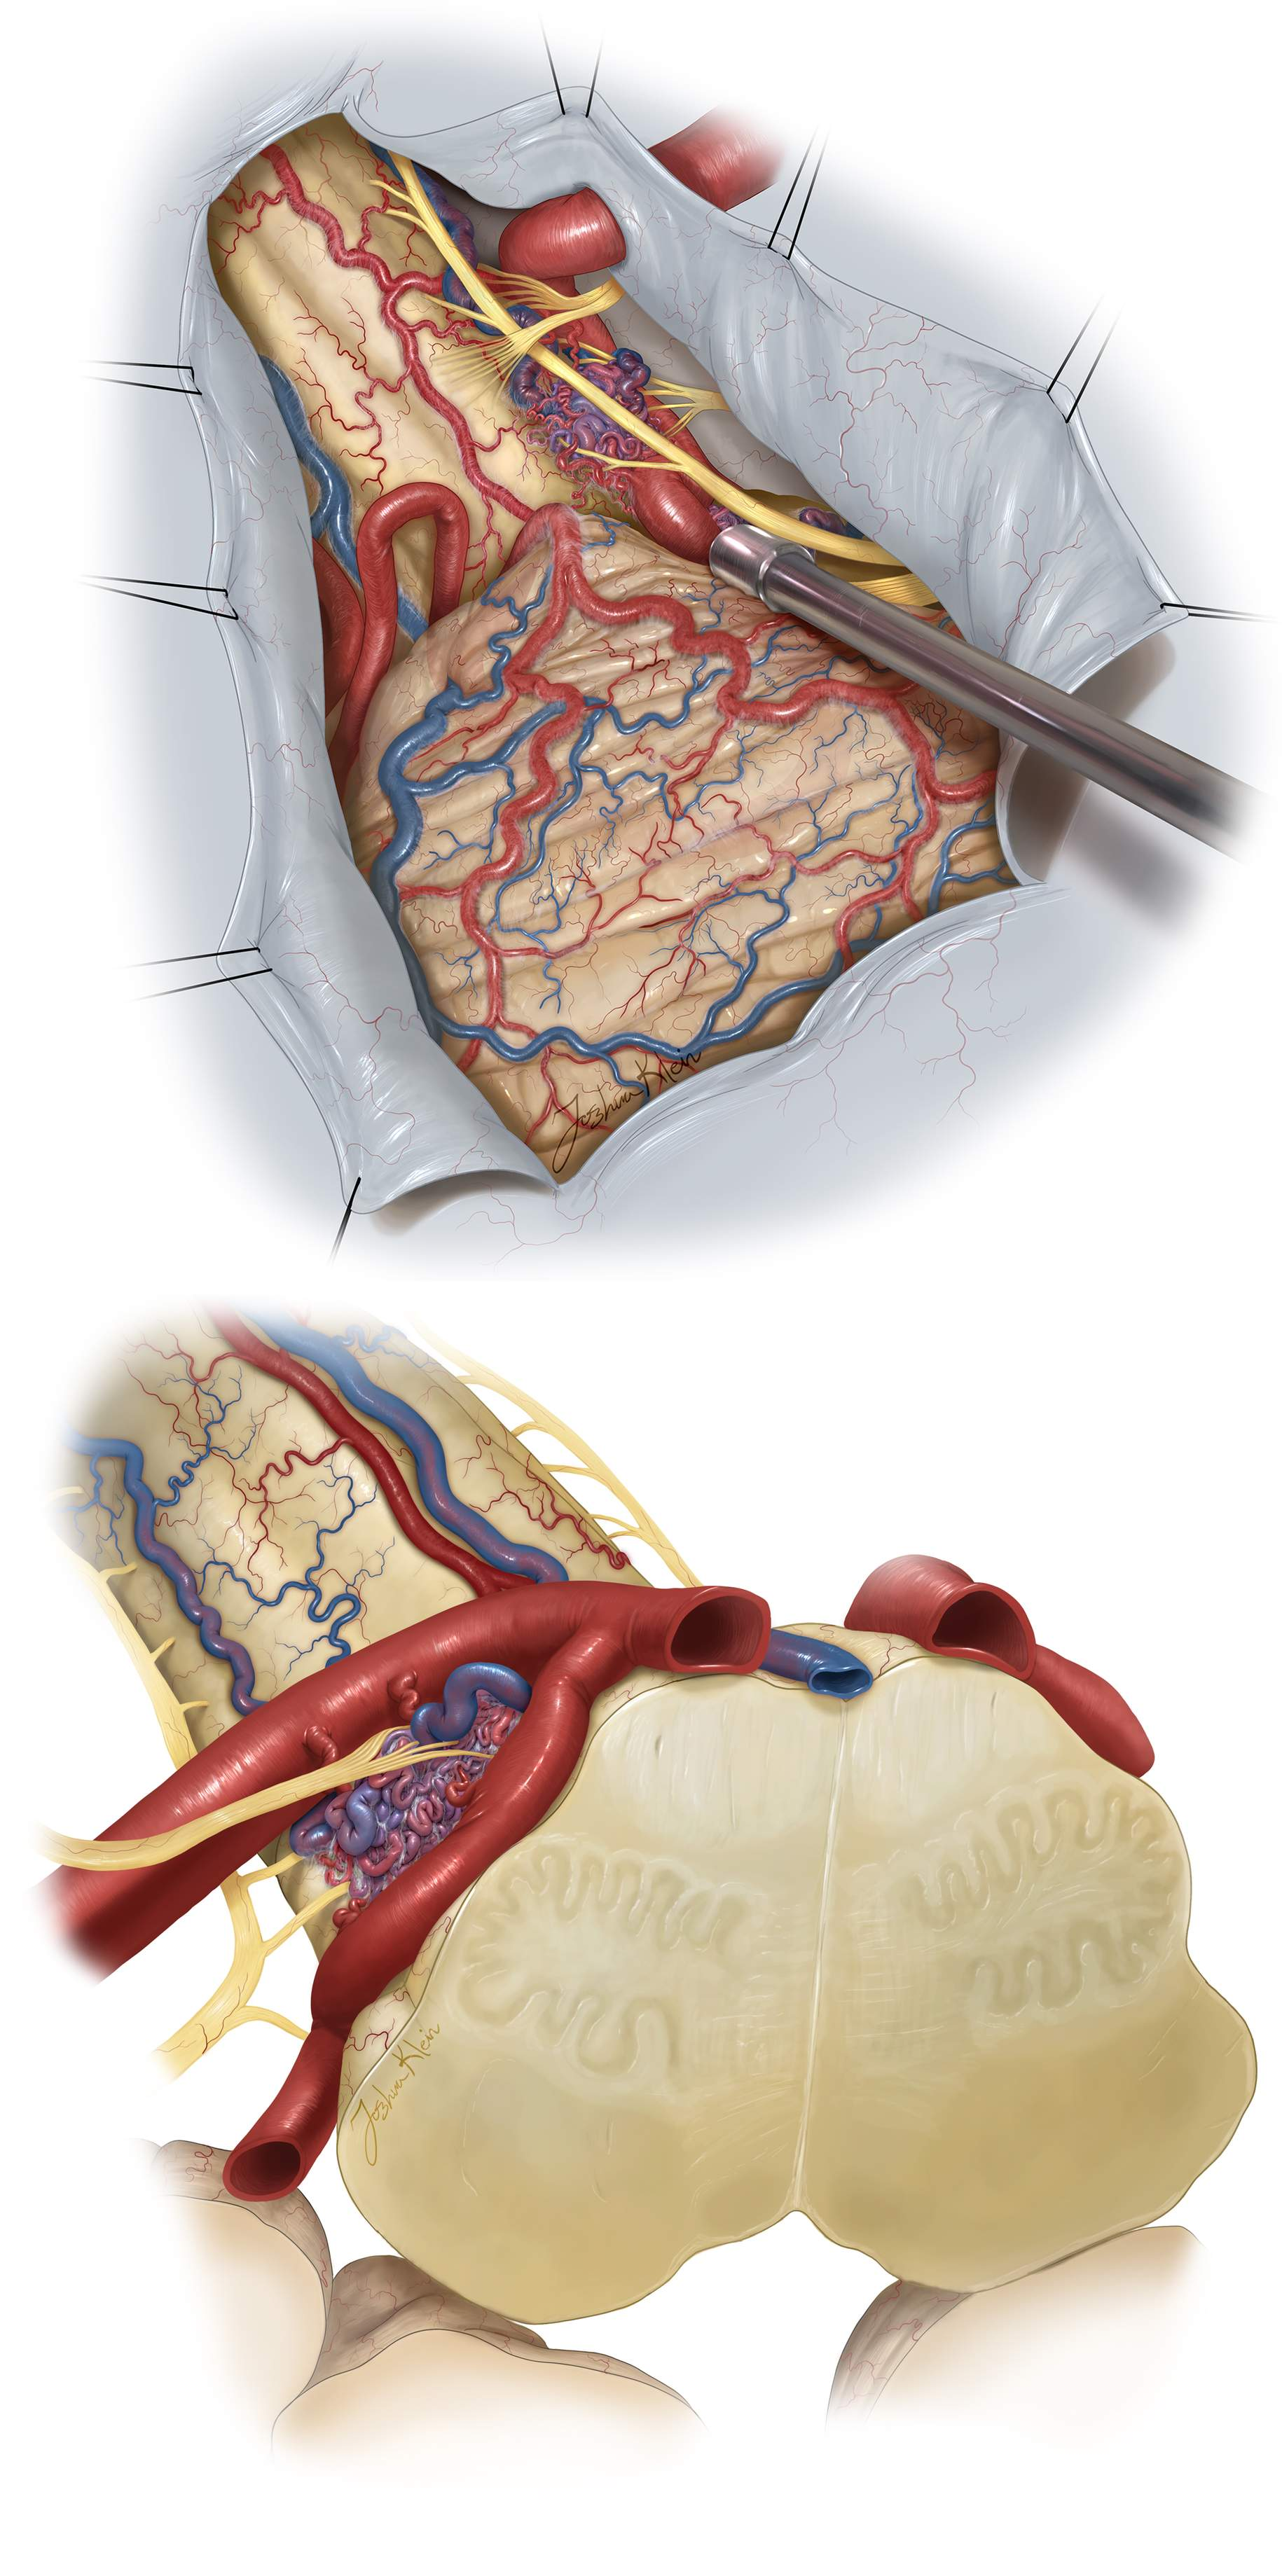 Figure 16: A lateral suboccipital or its far lateral variant are reasonable choices for exposure of the lesion (top photo.) I have transected 1-2 spinal accessory nerve contributions to the XI without any consequence and this maneuver is an option and often mandatory in these AVMs. These AVMs are purely epipial and amenable to resection without pial invasion. Skeletonization of the vetebral artery and vital  en passage  perforating arteries are paramount (top). You can further appreciate the relationship to the PICA and vertebral artery in the bottom image.